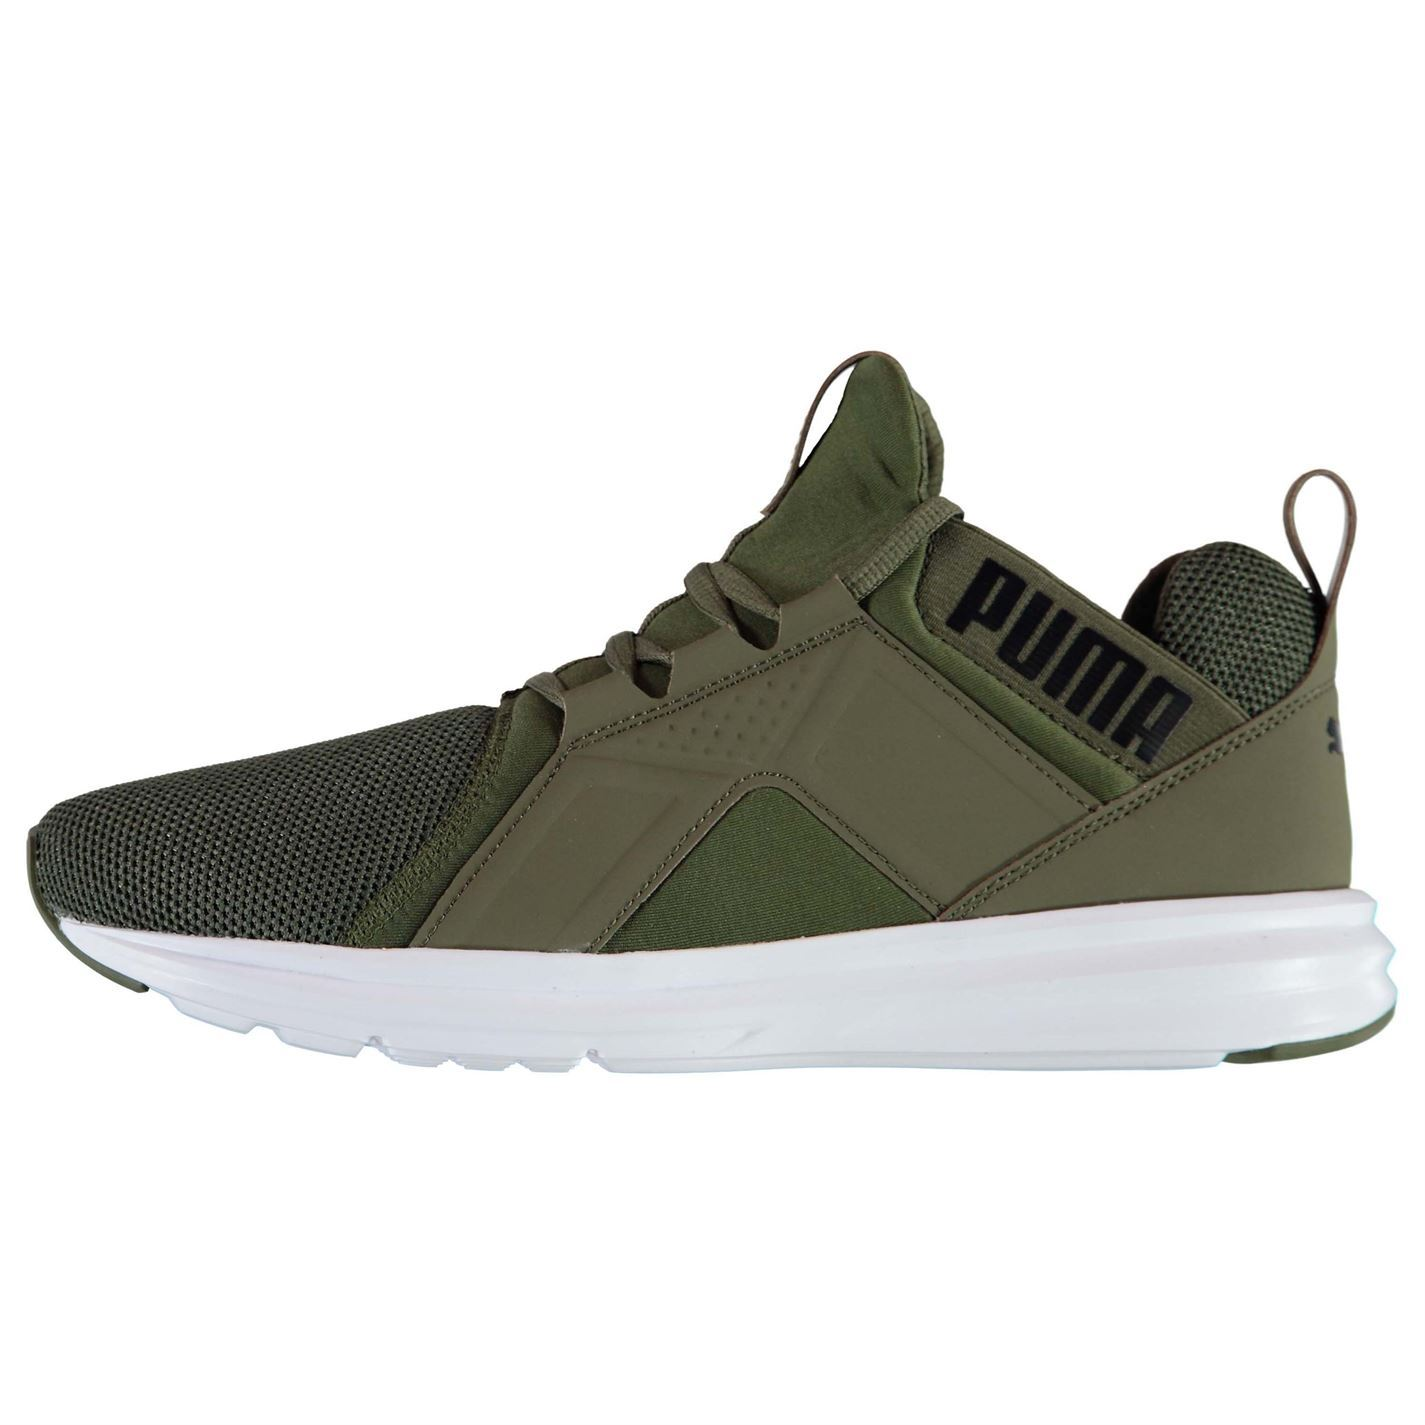 7fb46454fc74 ... Puma Enzo Mesh Runners Trainers Mens Olive Athletic Sneakers Shoes ...